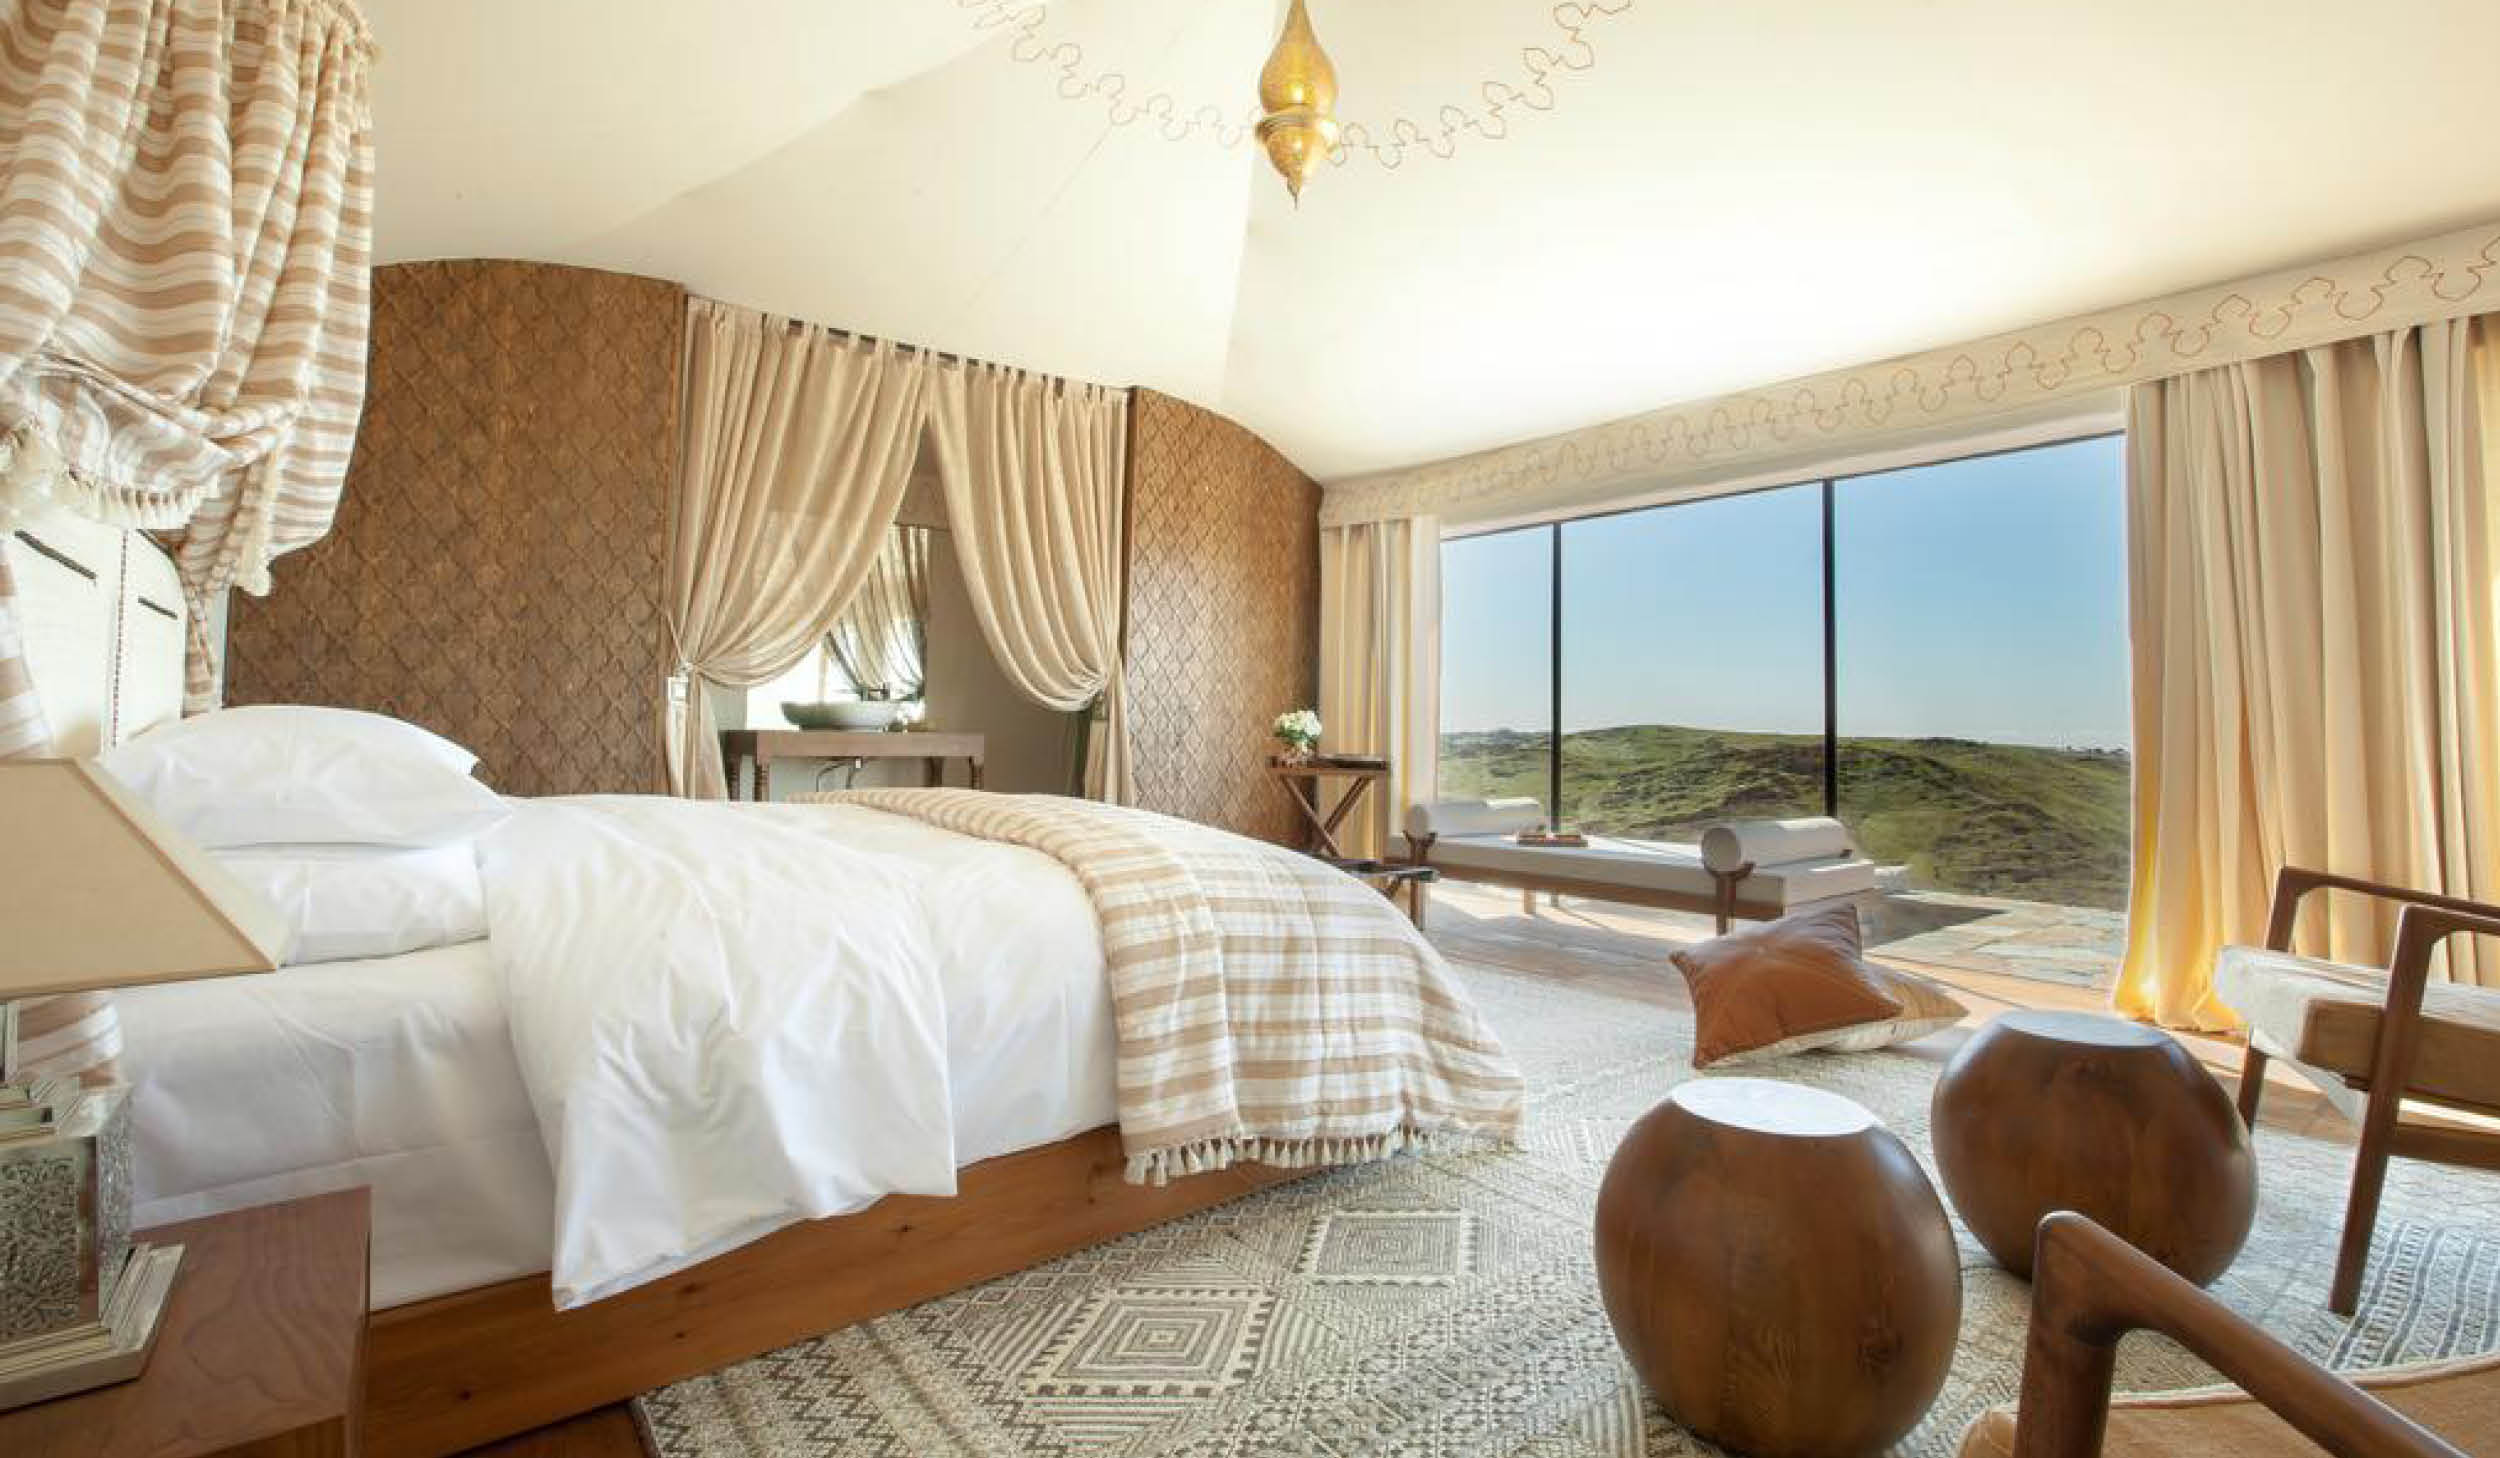 Romantic Morocco Holiday Offer8